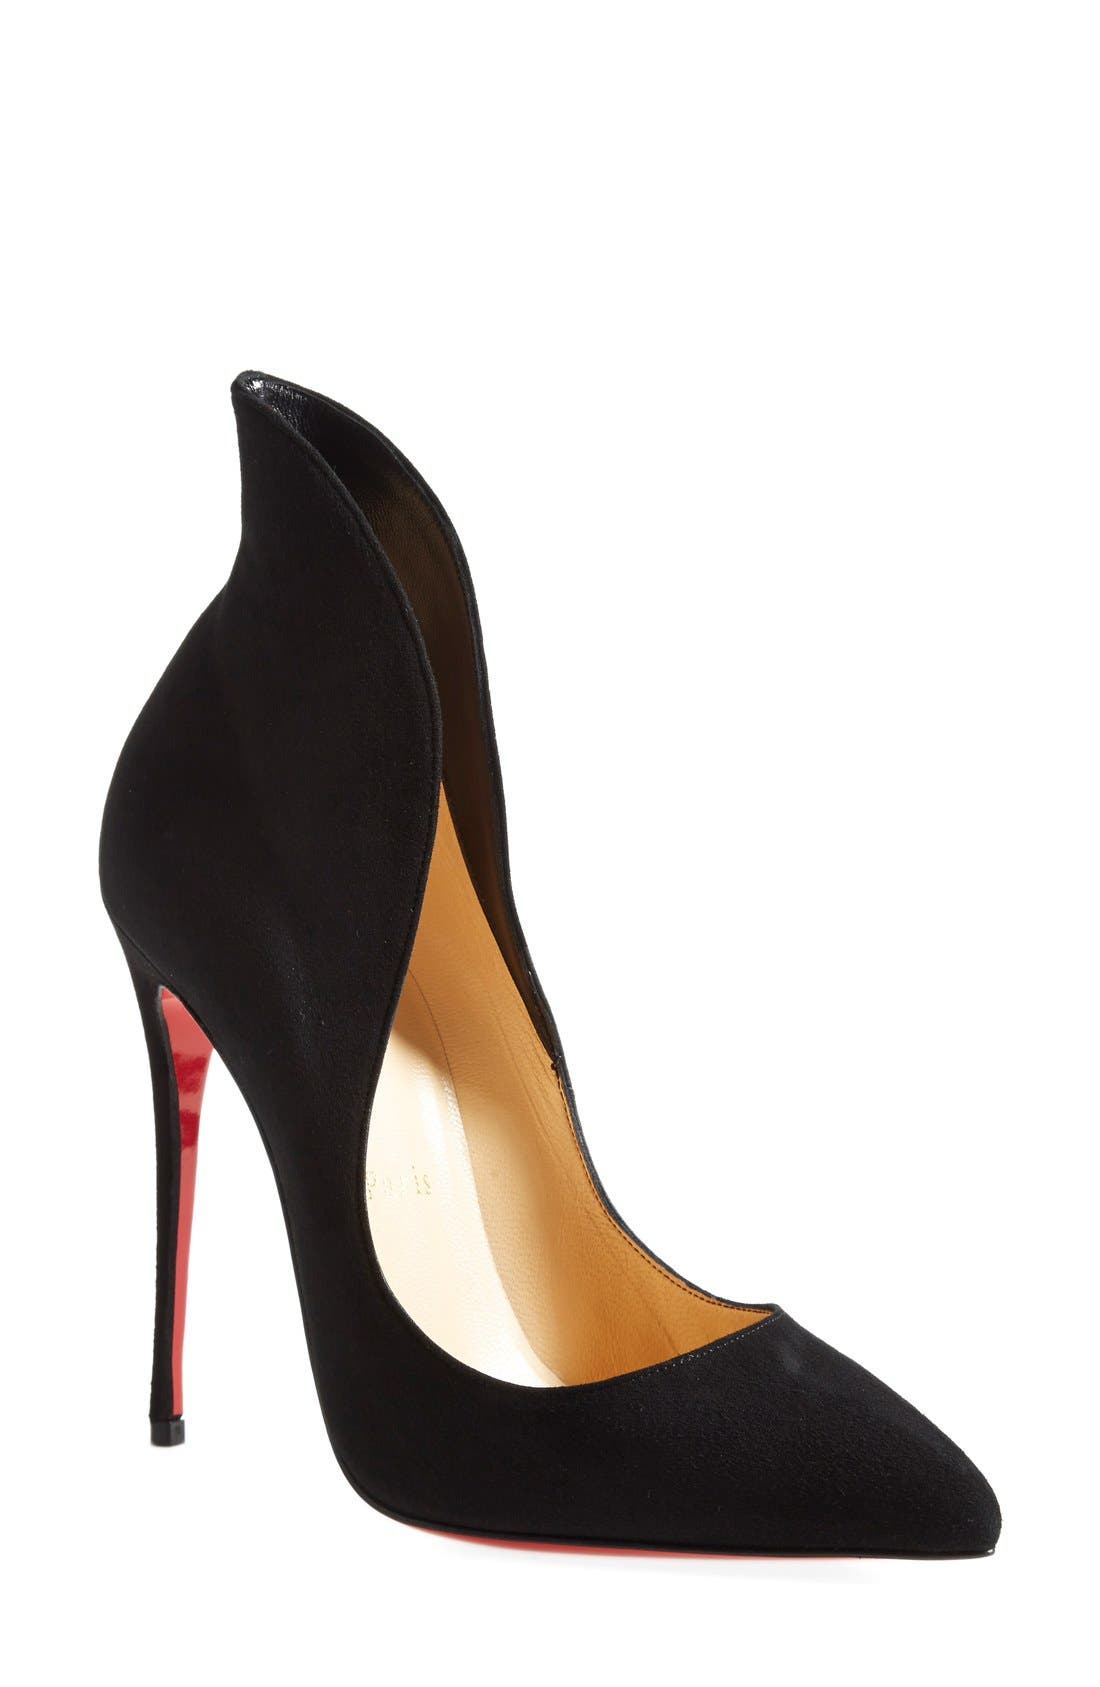 Alternate Image 1 Selected - Christian Louboutin 'Mea Culpa' Flared Pointy Toe Pump